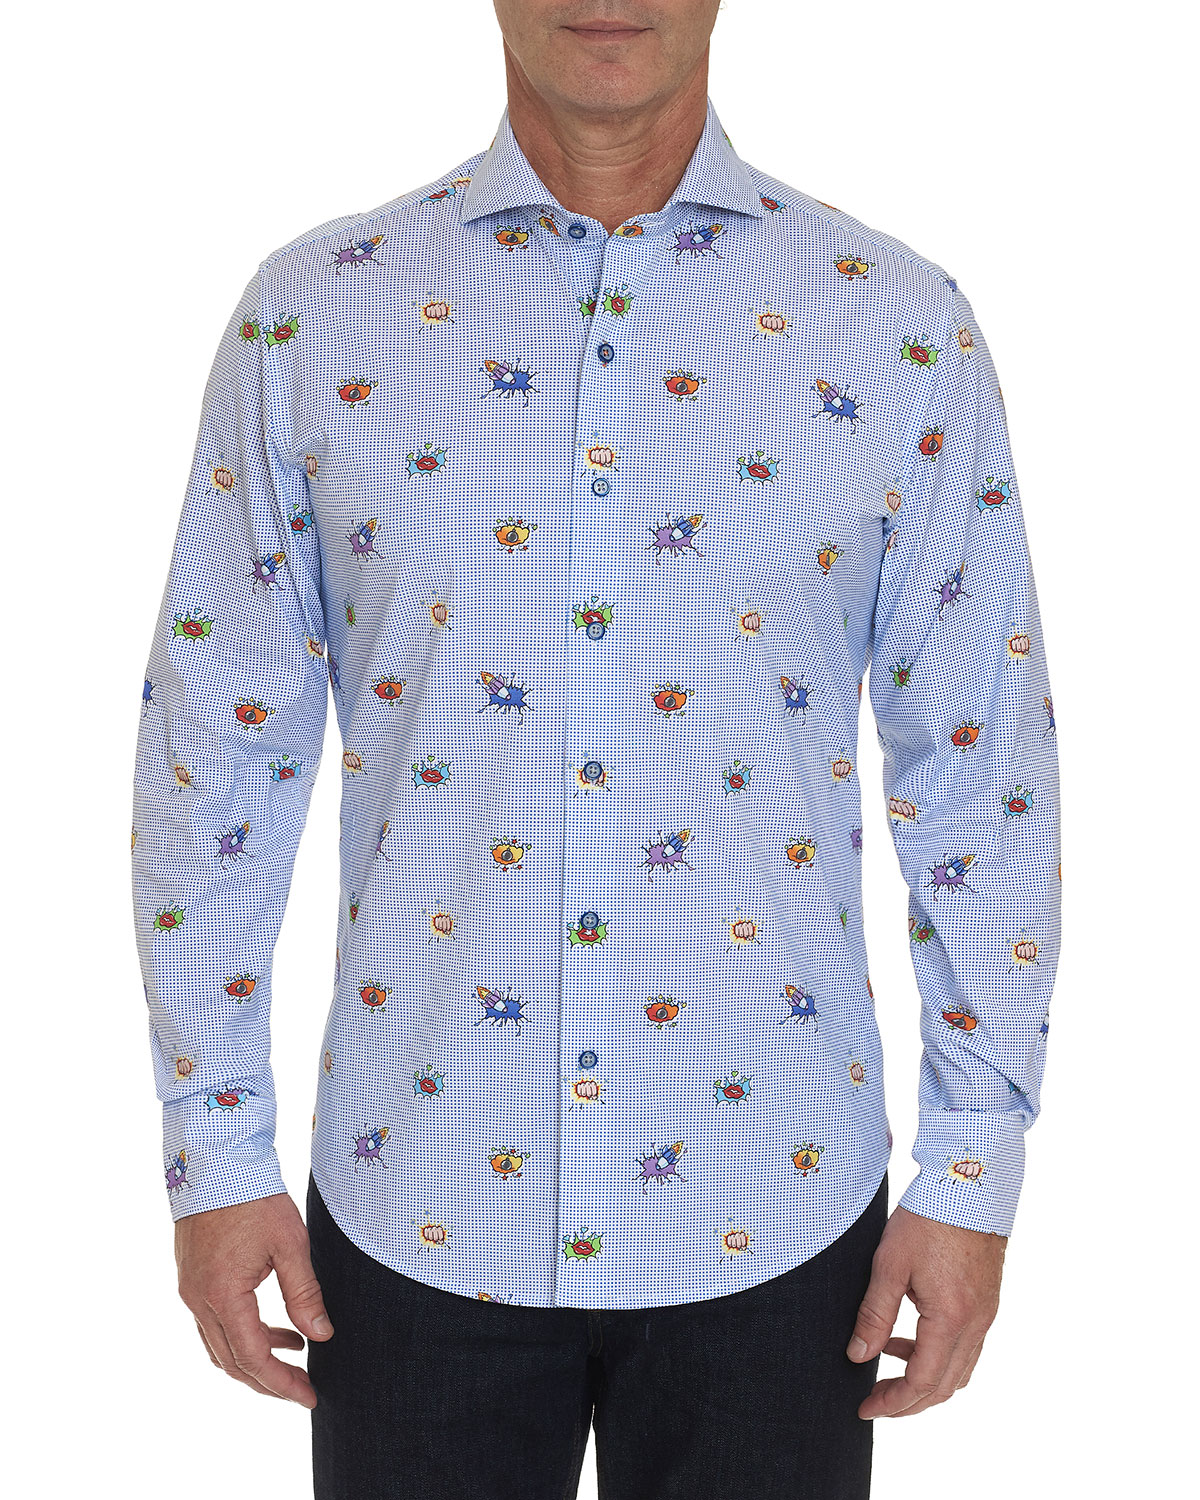 Robert Graham T-shirts MEN'S BOOM SMACK PATTERN SPORT SHIRT